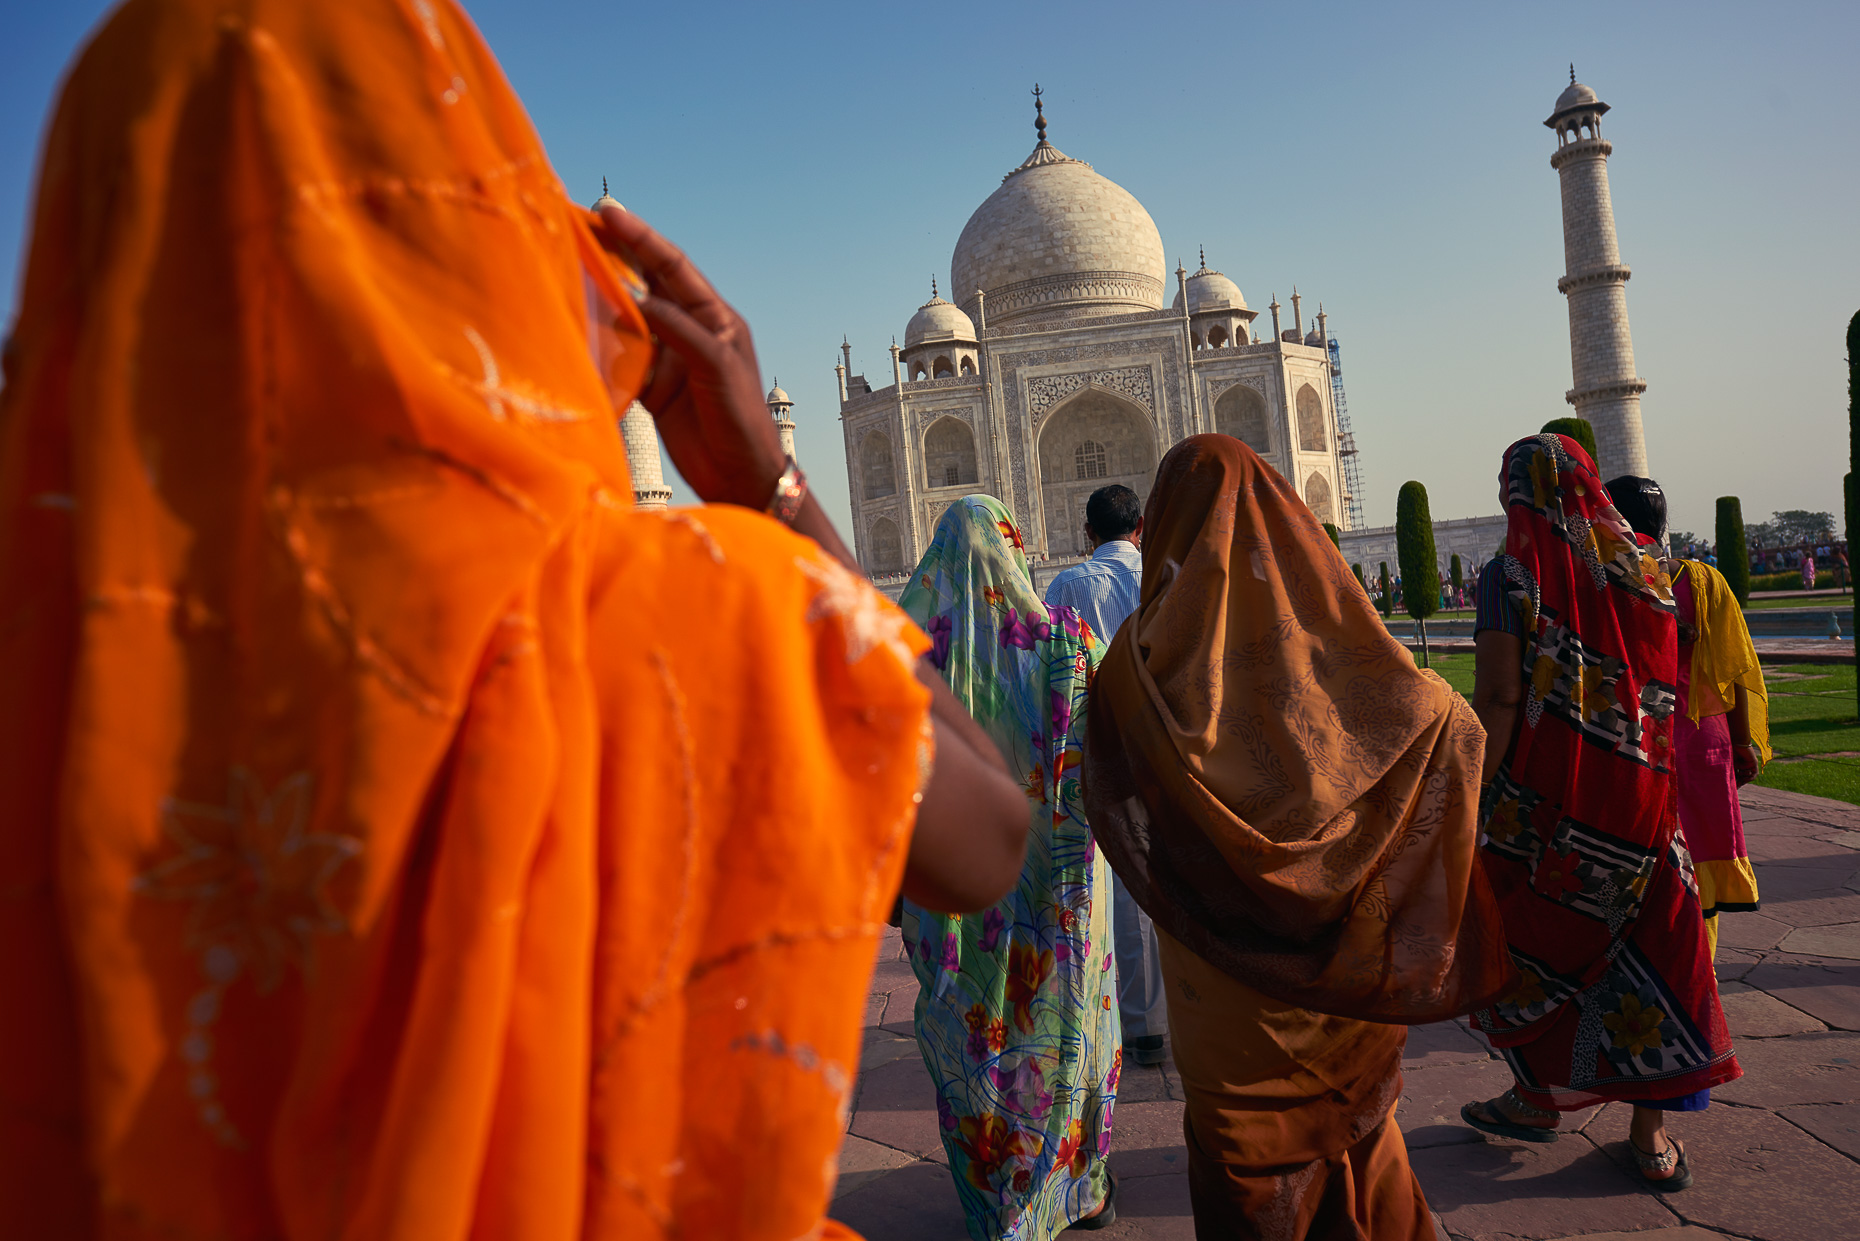 Personal_India_Agra_DSC3515-13